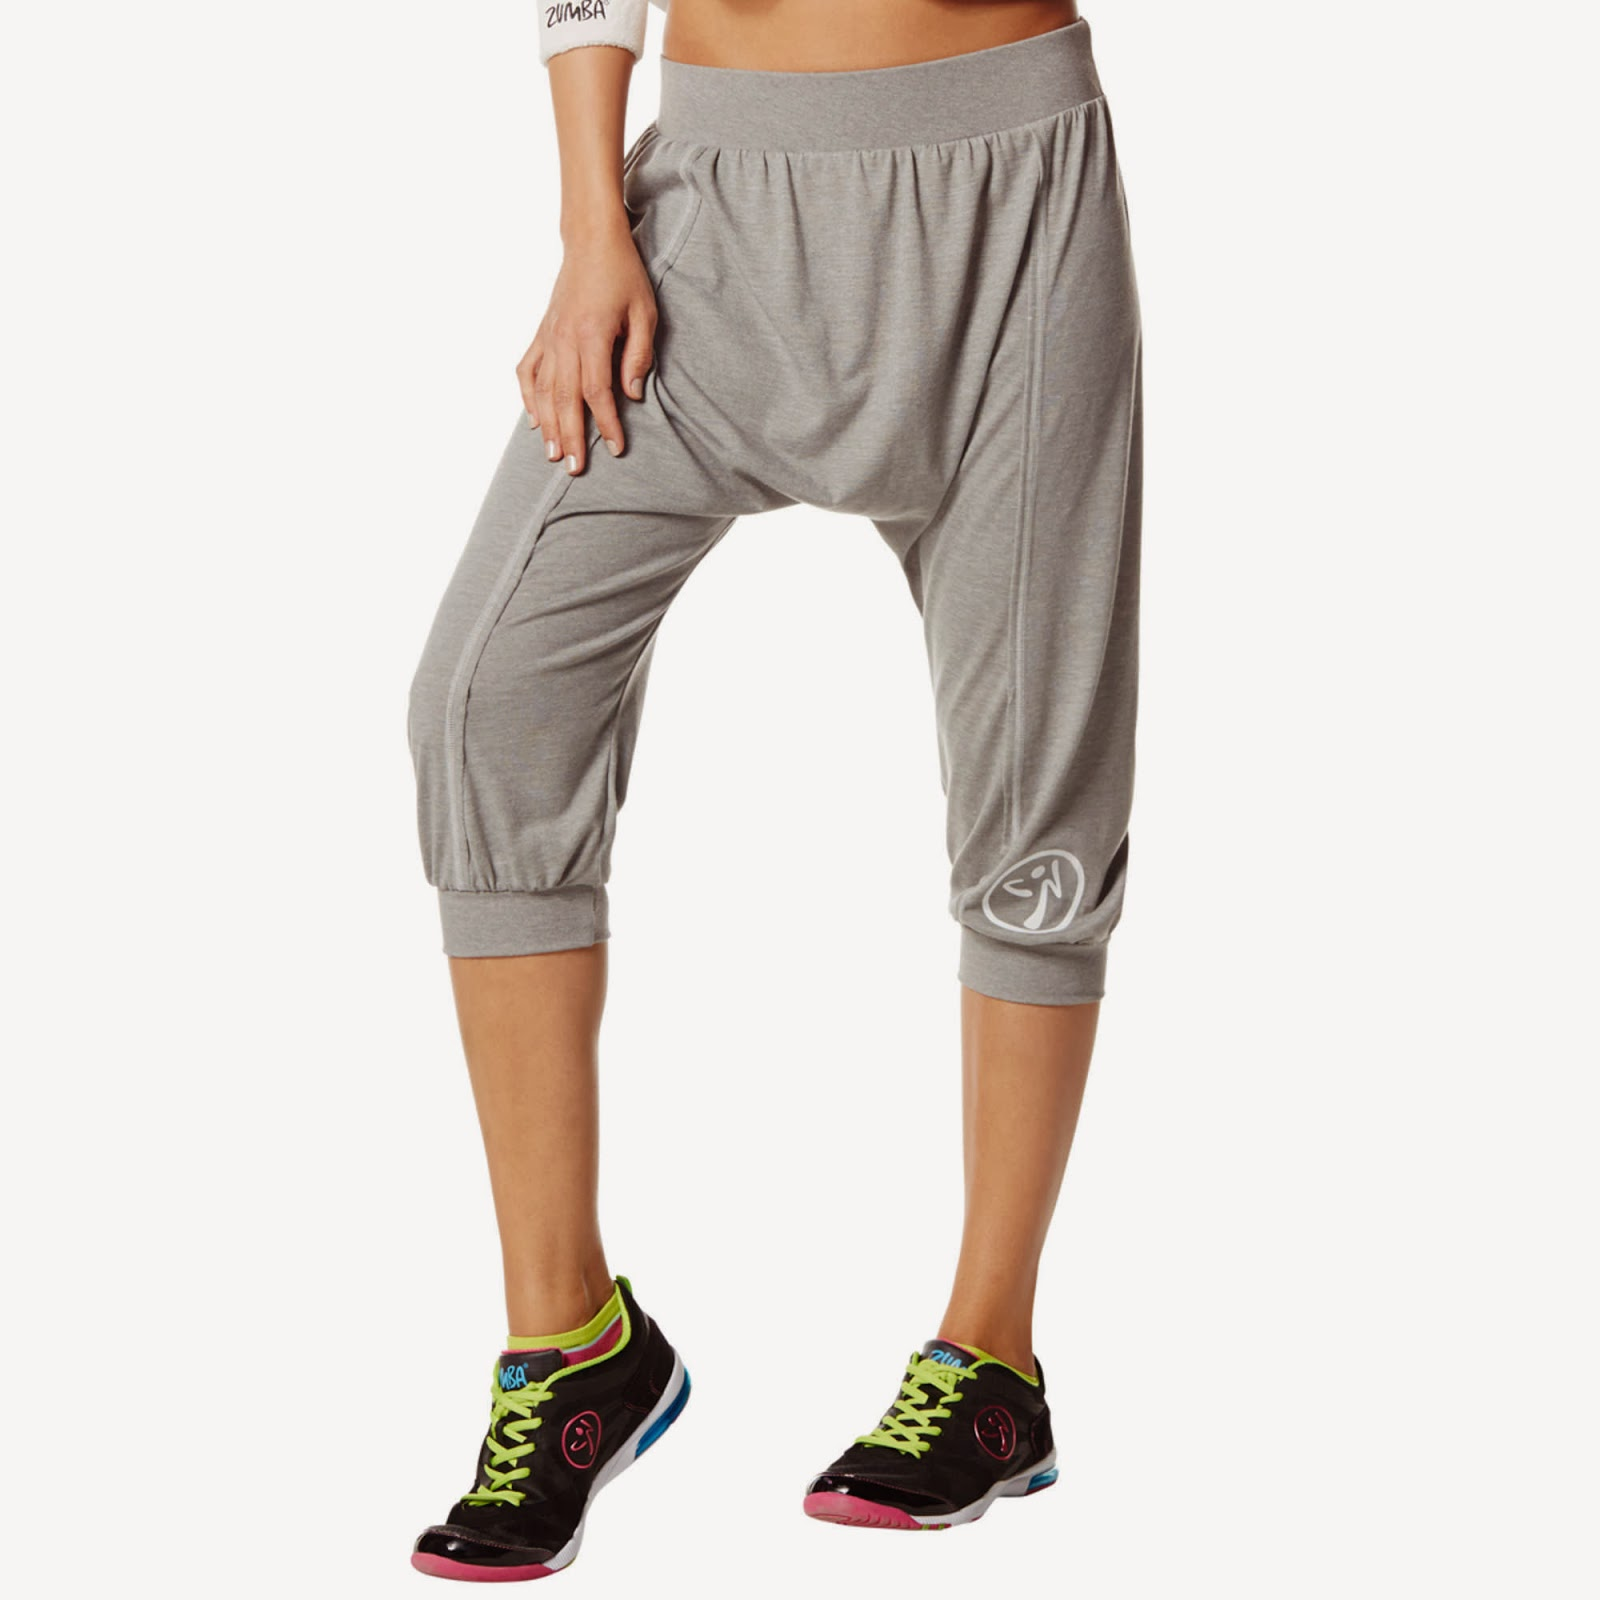 The Zumba Mommy: The Studio To Street Collection - Part 1: Pants